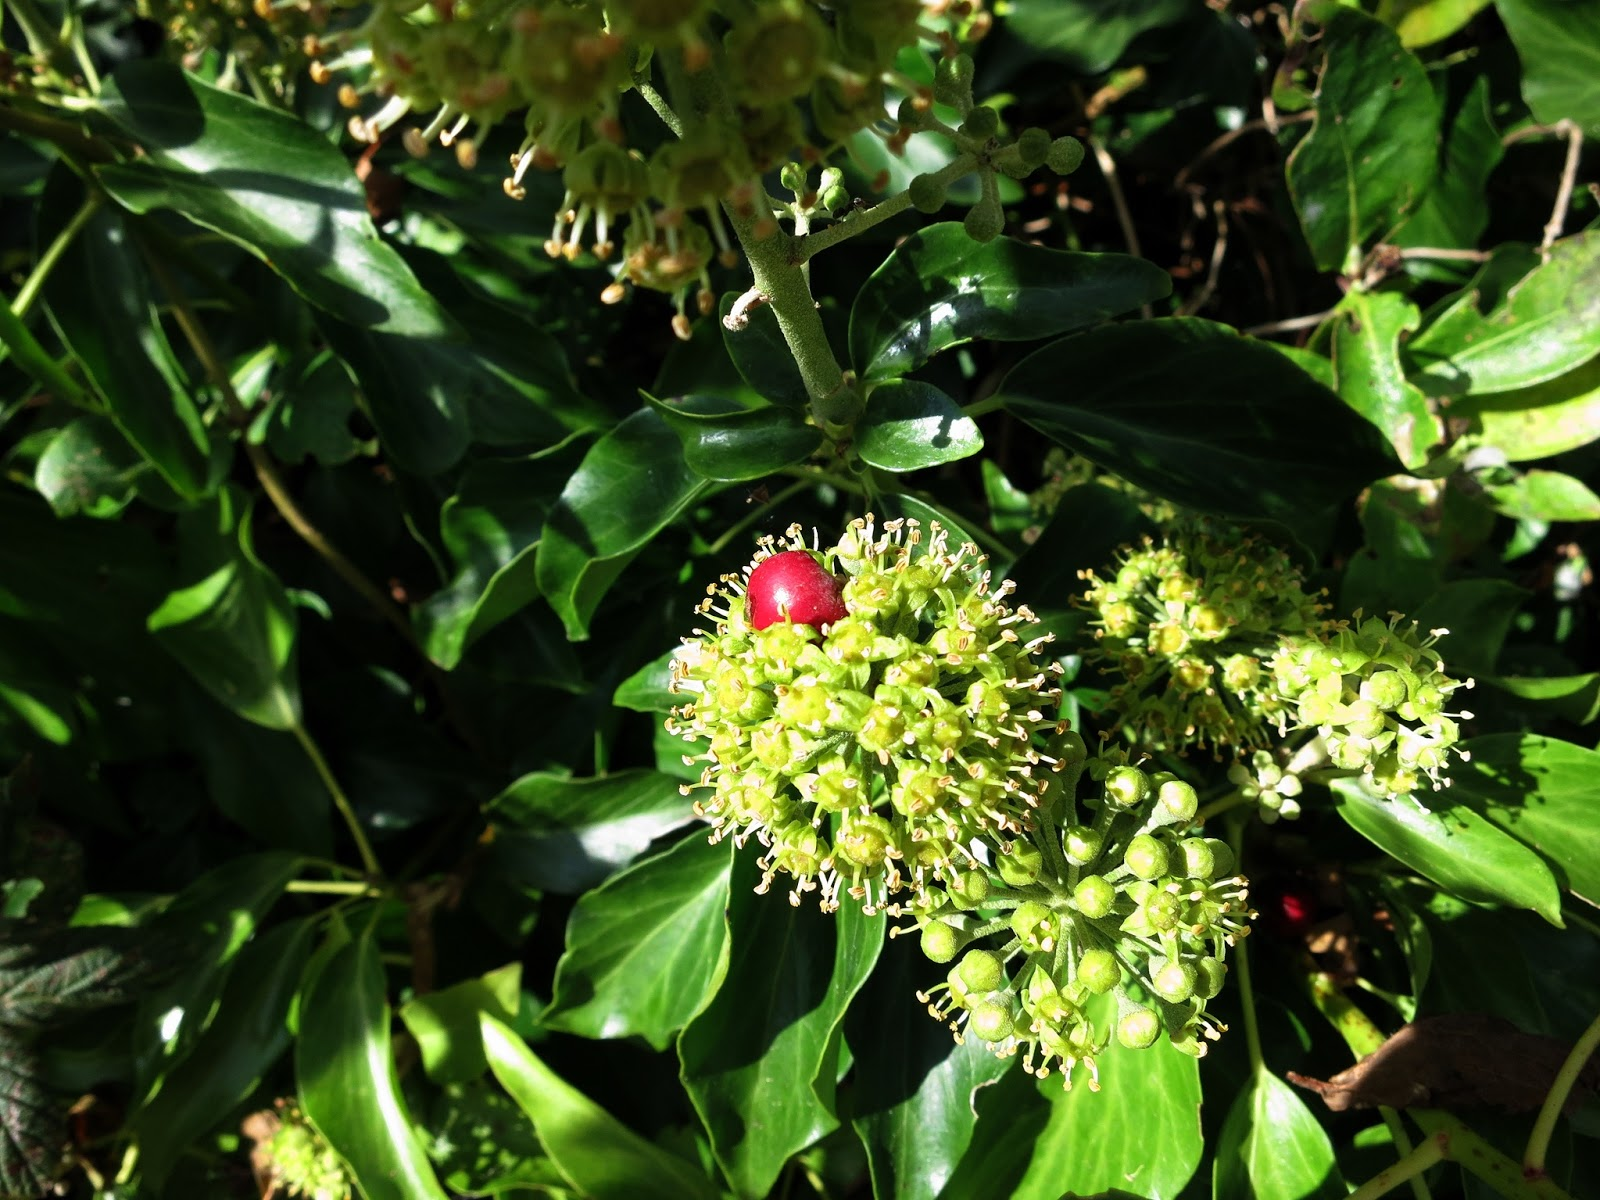 A pom-pom of ivy flowers upon which a single bright red haw has fallend